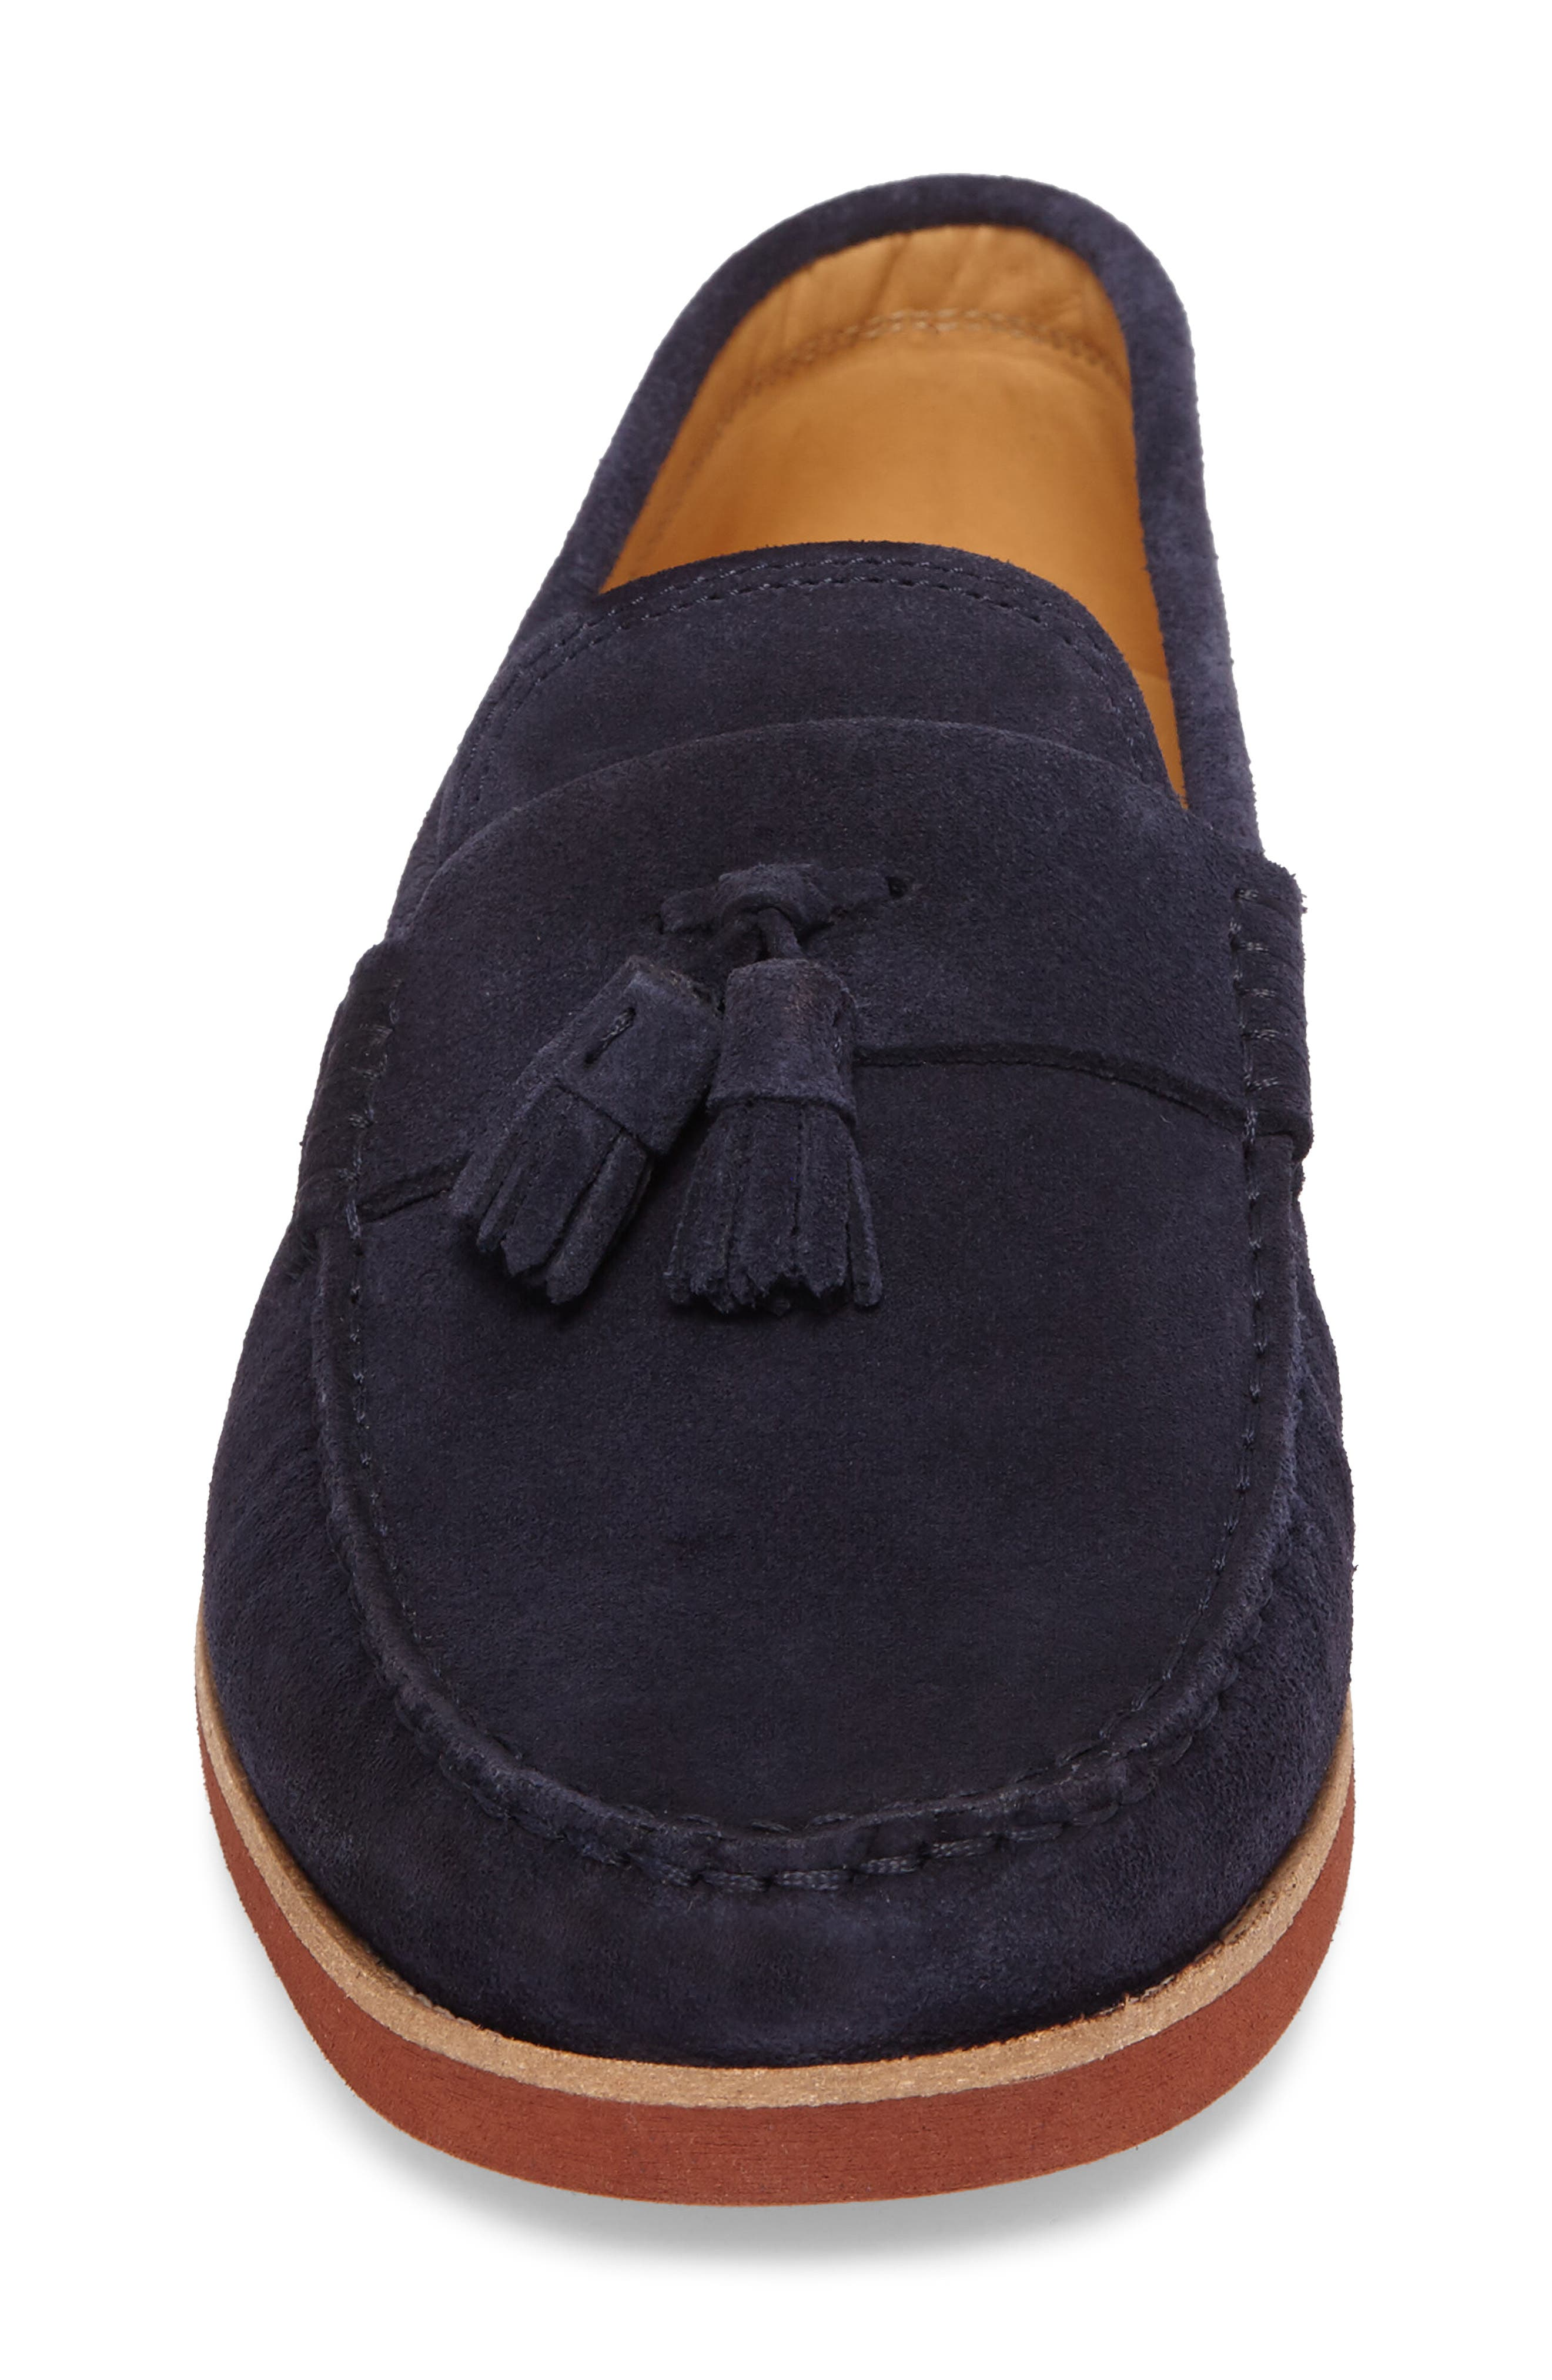 Stowes Tassel Loafer,                             Alternate thumbnail 4, color,                             410